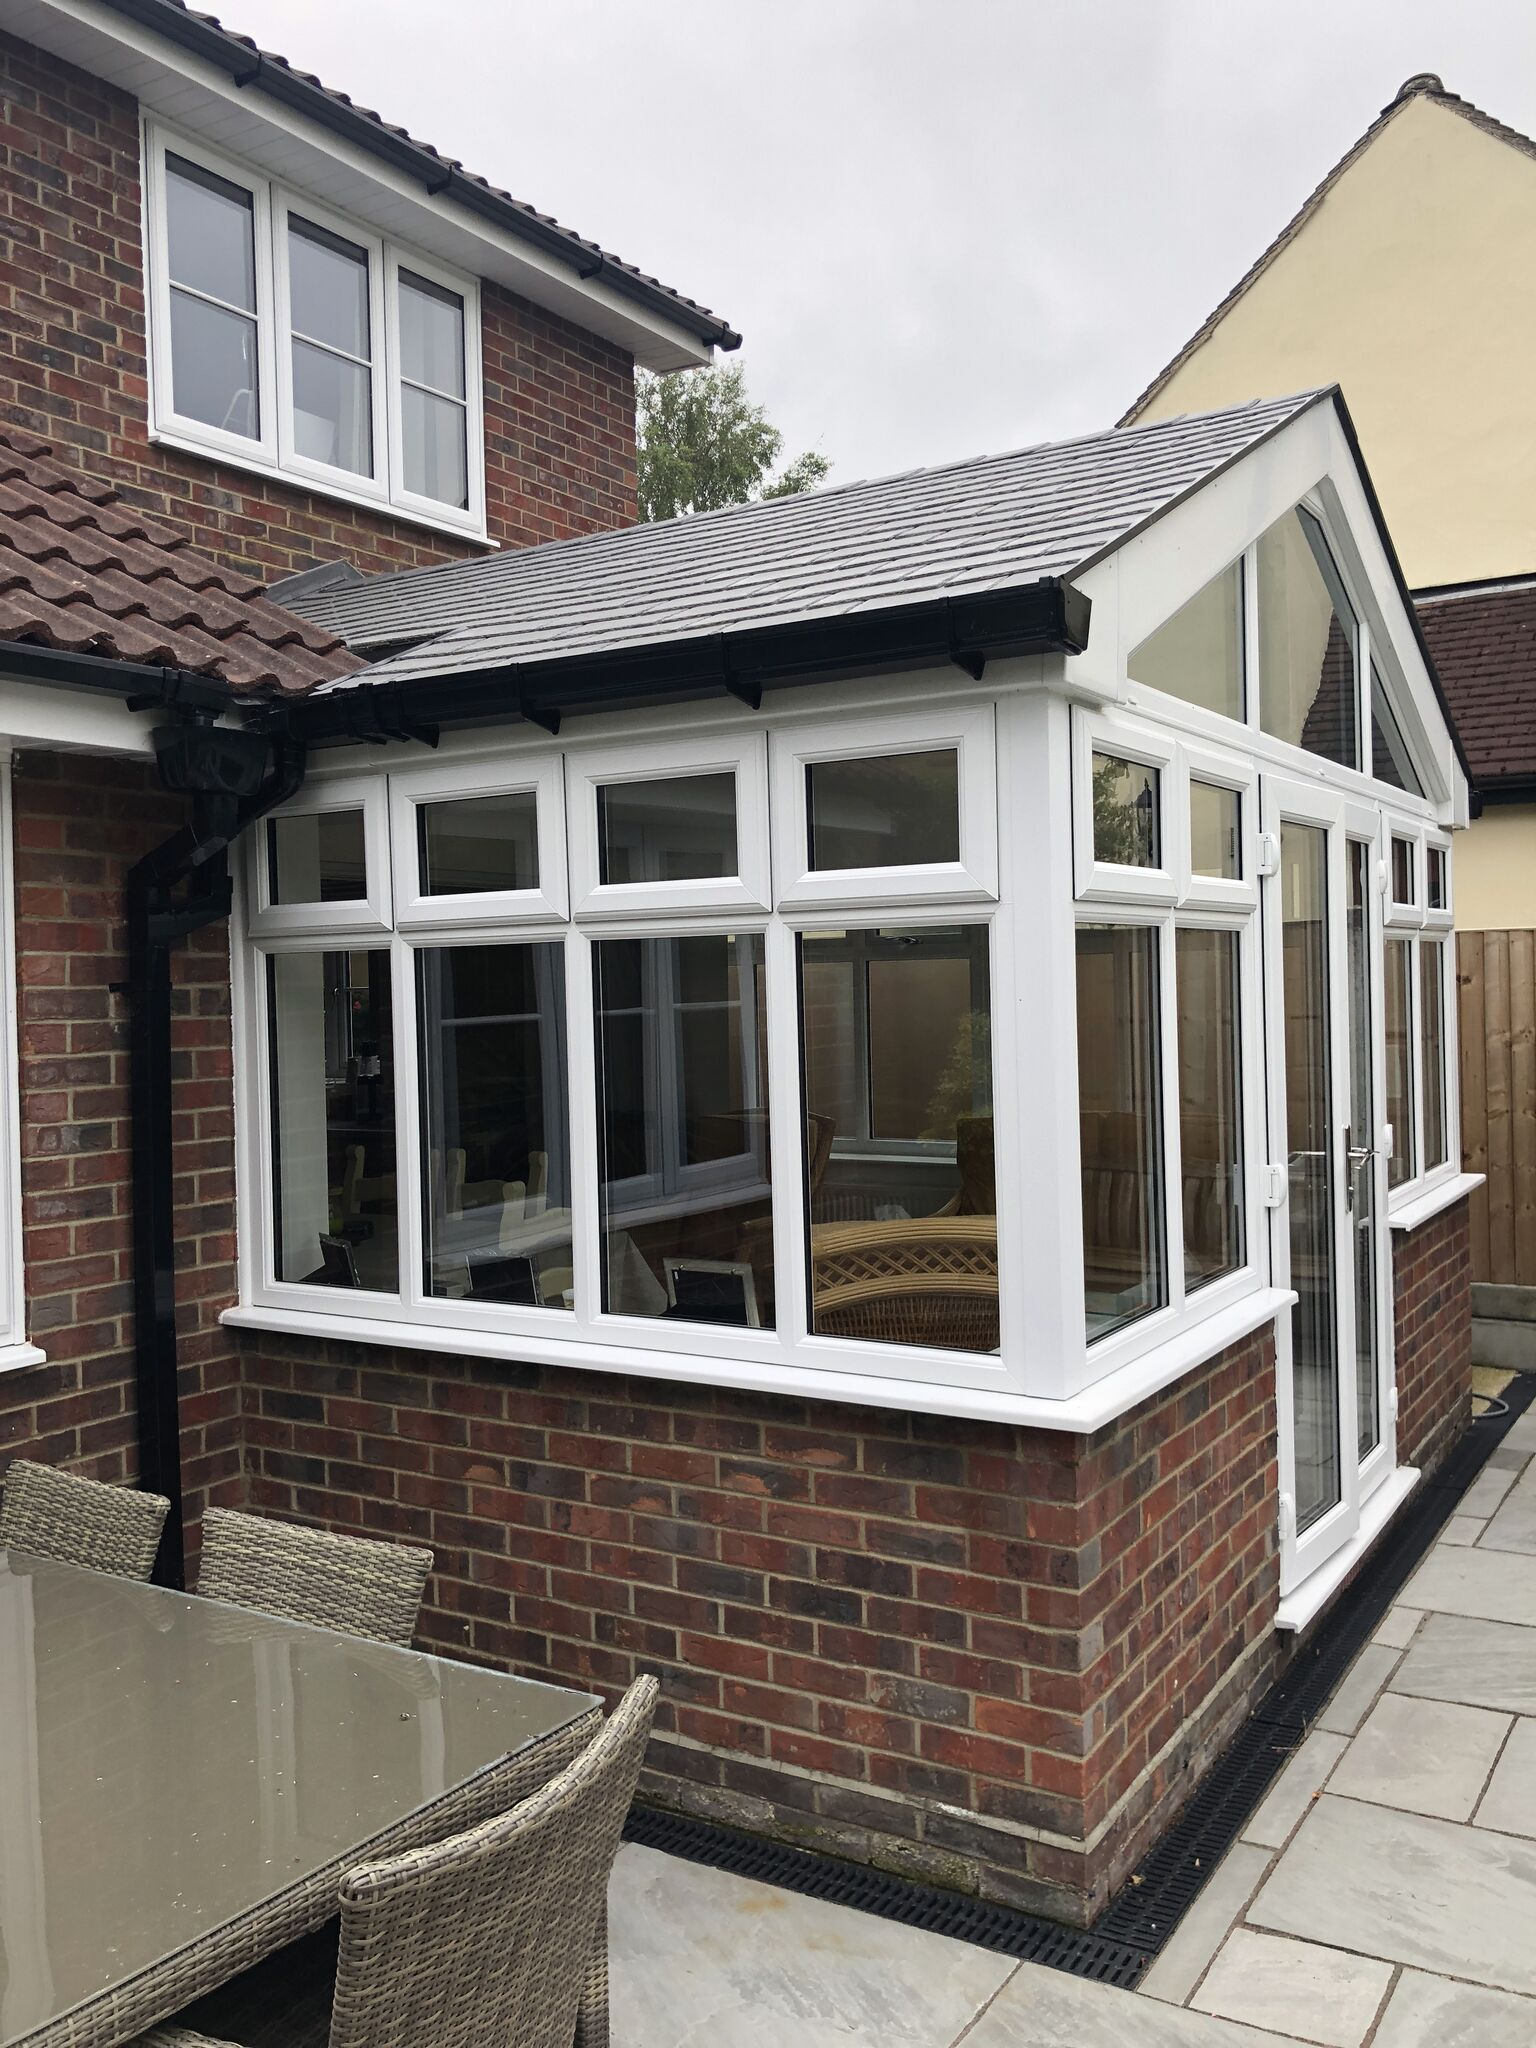 adding an extension to the home rather than moving, Soverisgn home improvements, Essex